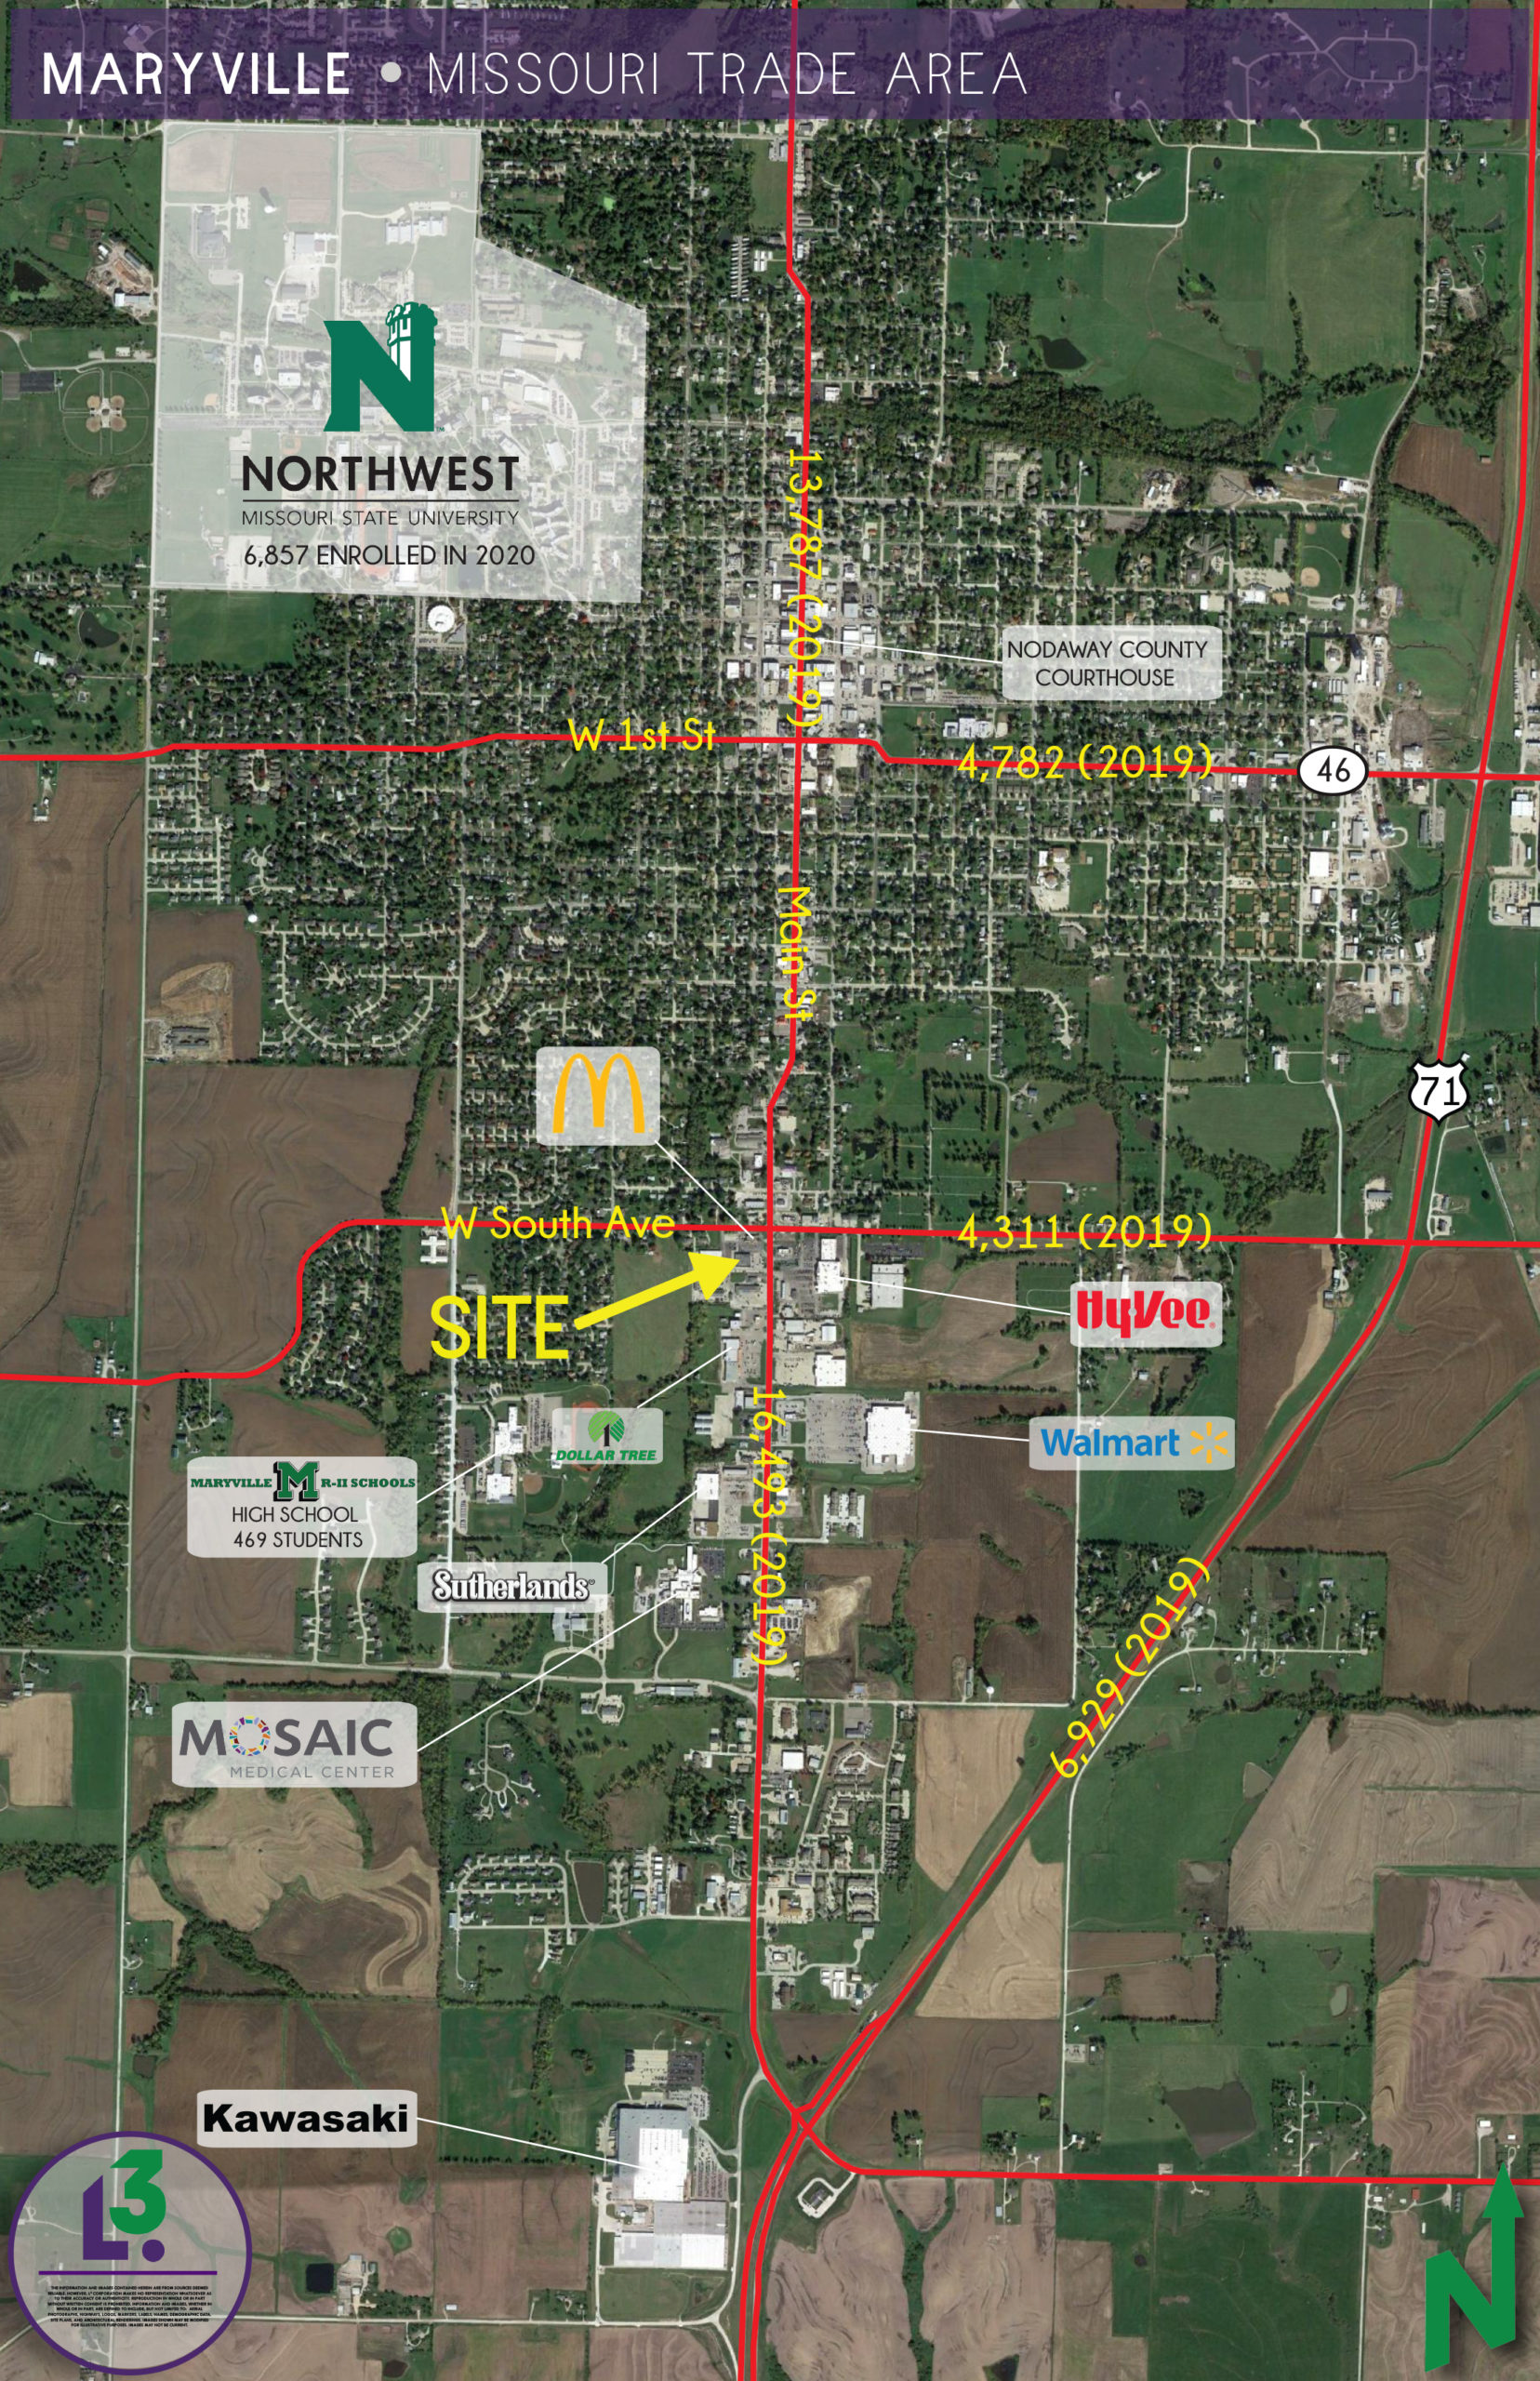 MARYVILLE AERIAL